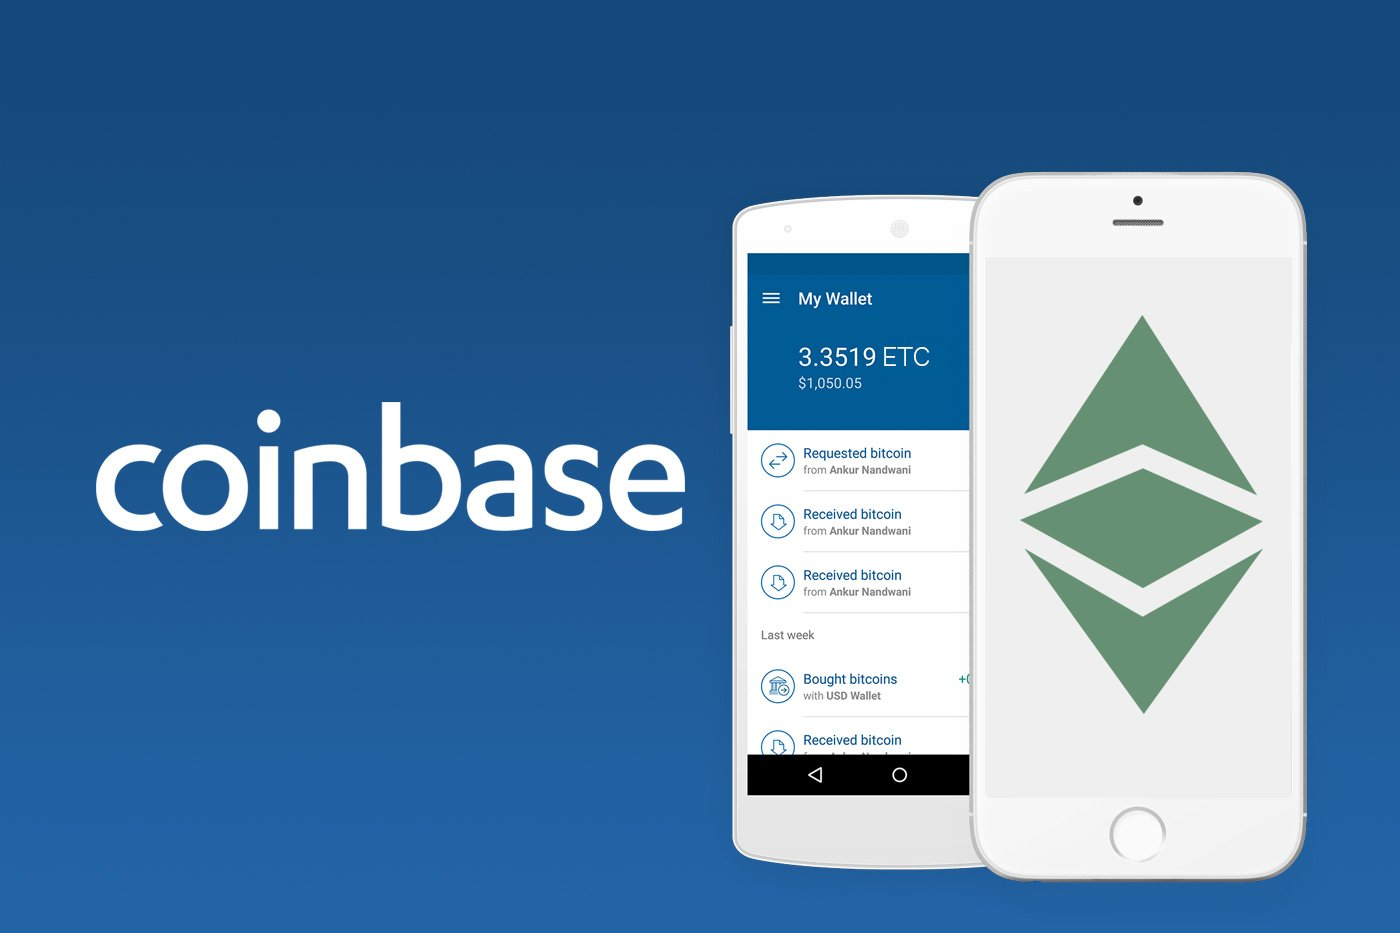 what cryptocurrency can i buy on coinbase